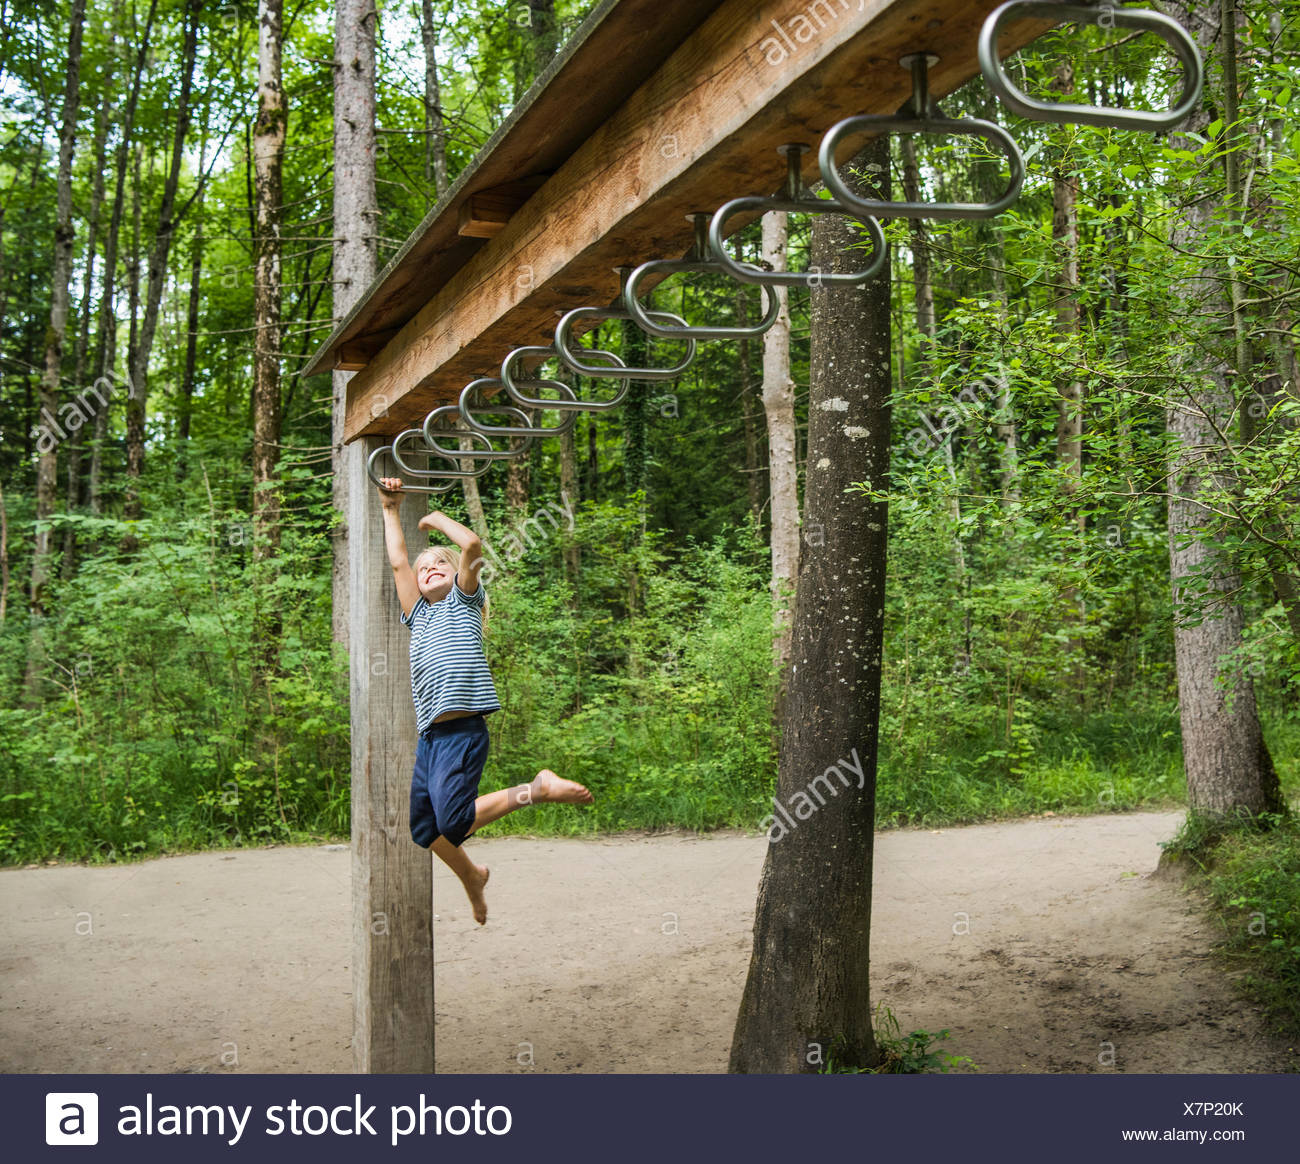 Boy hanging from monkey bars in playground - Stock Image